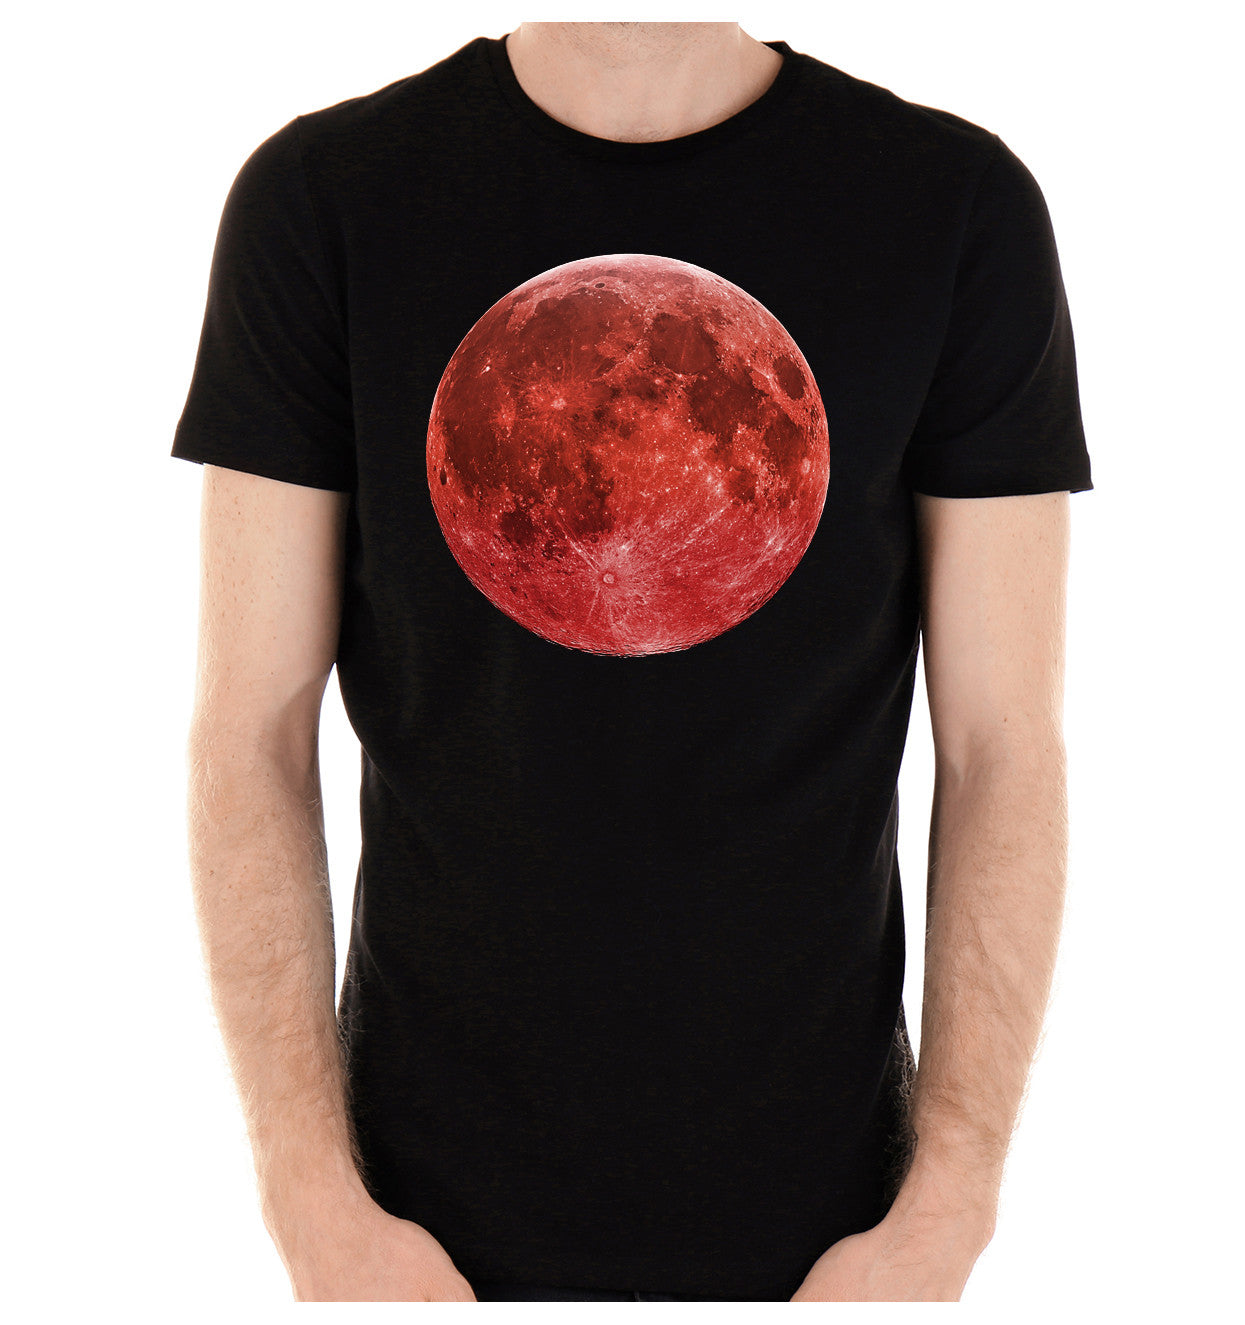 Red Full Blood Moon T-Shirt Alternative Clothing Prophecies of End Times